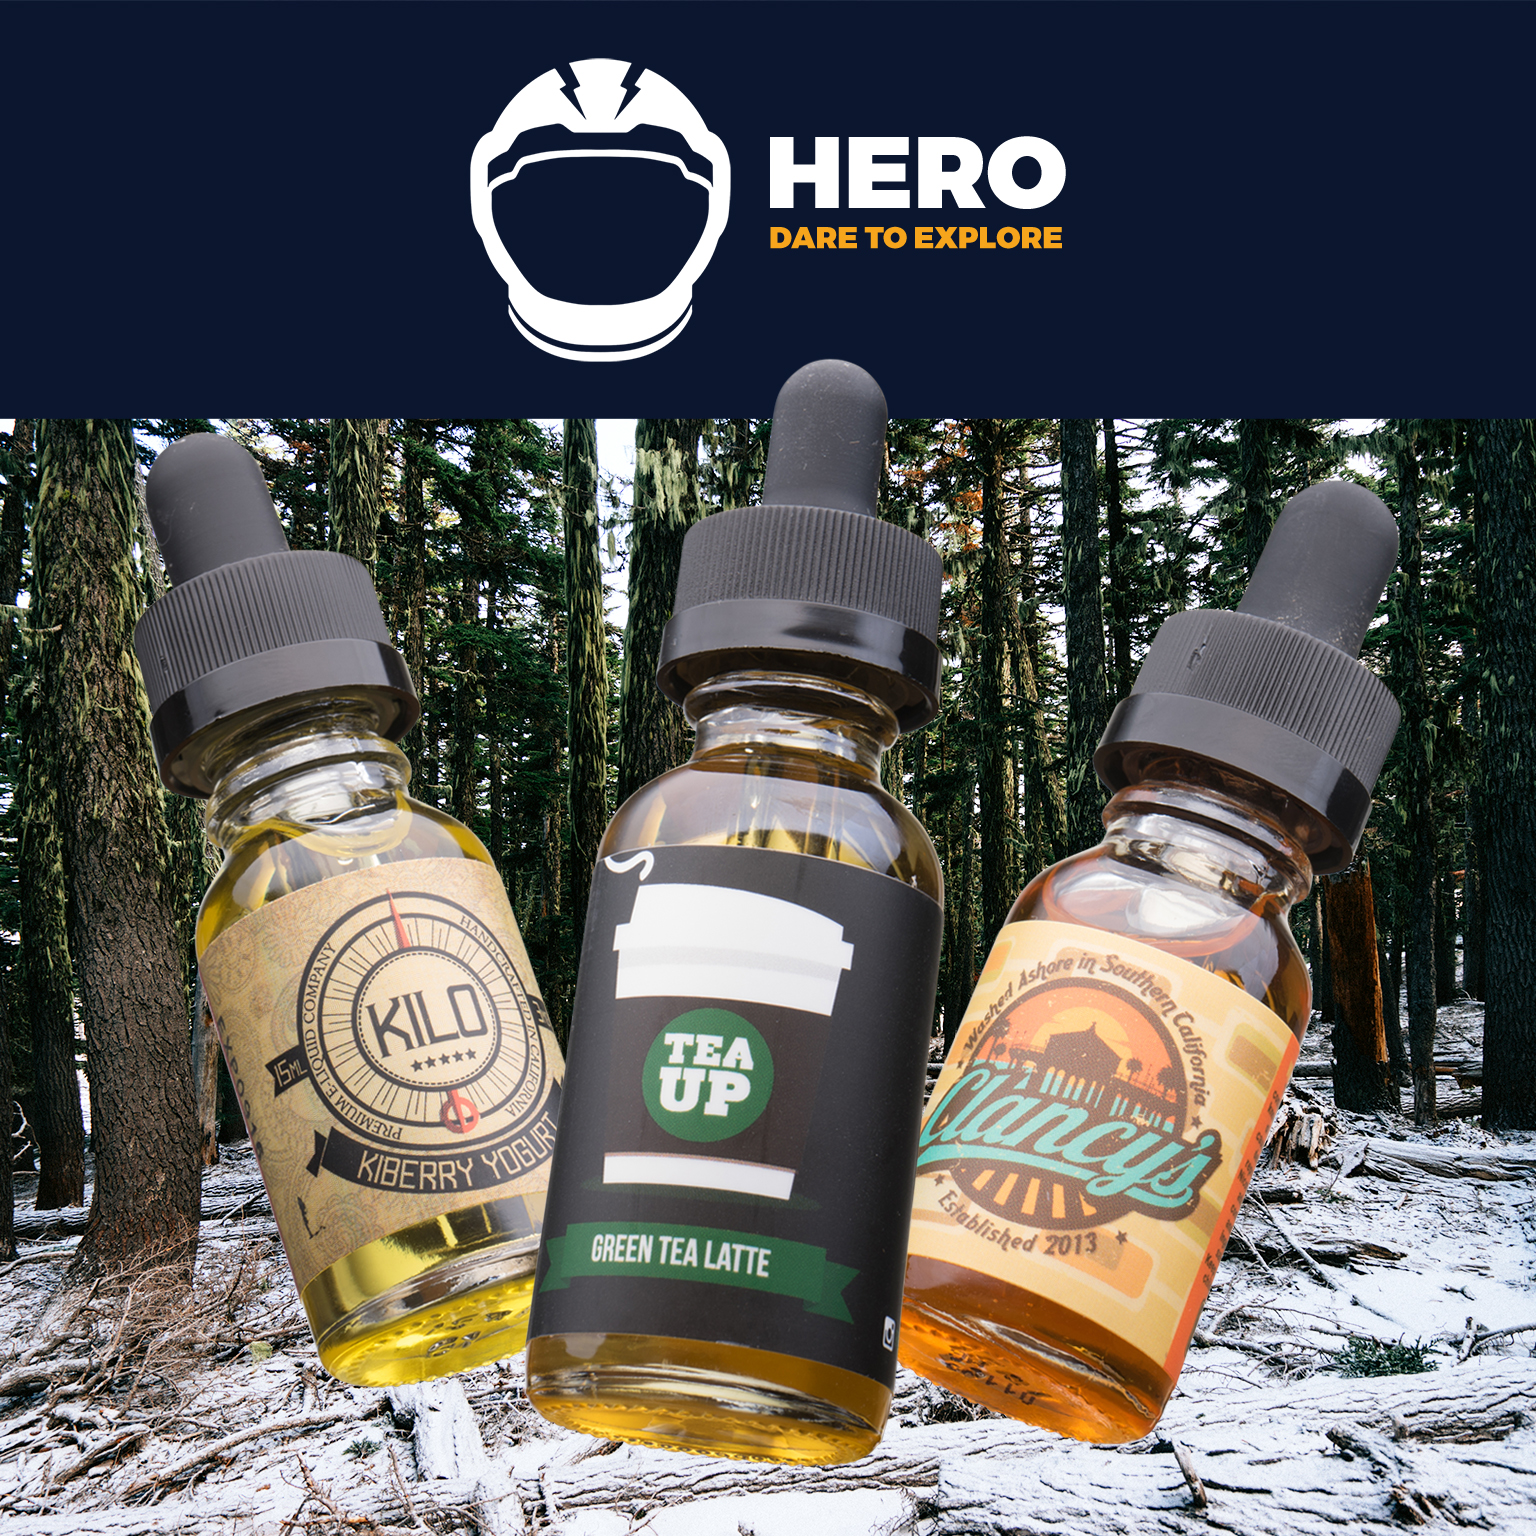 HERO Box | Feat. Green Tea Latte by Tea Up Vapory, Kiberry Yogurt by Kilo, and The Wedge by Clancy%27s Vapors Photo